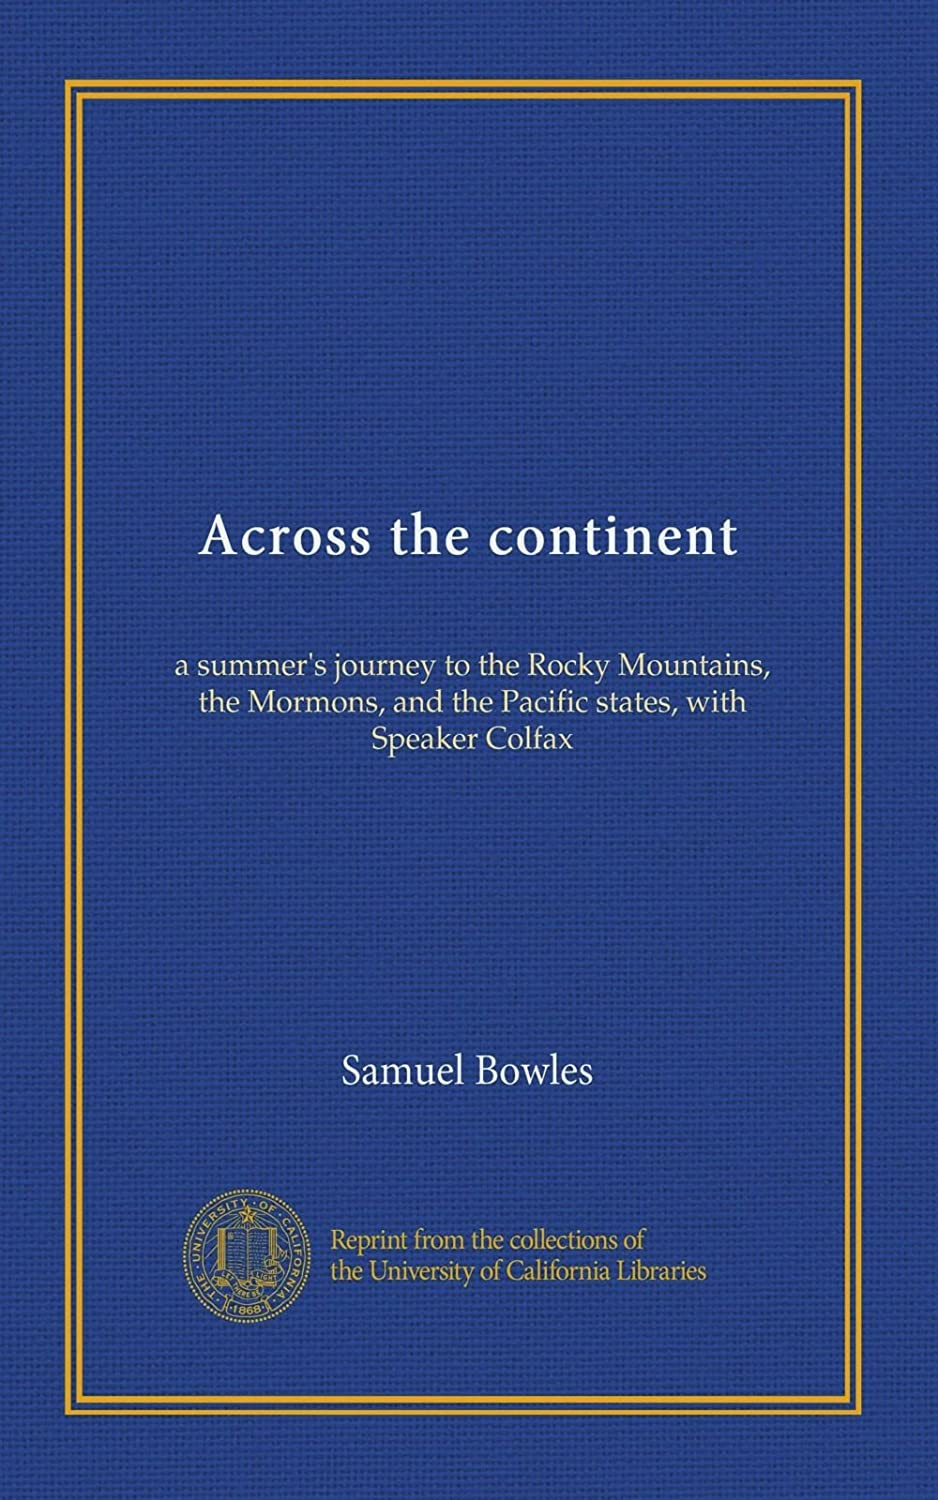 Across the continent: a summer's journey to the Rocky Mountains, the Mormons, and the Pacific states, with Speaker Colfax